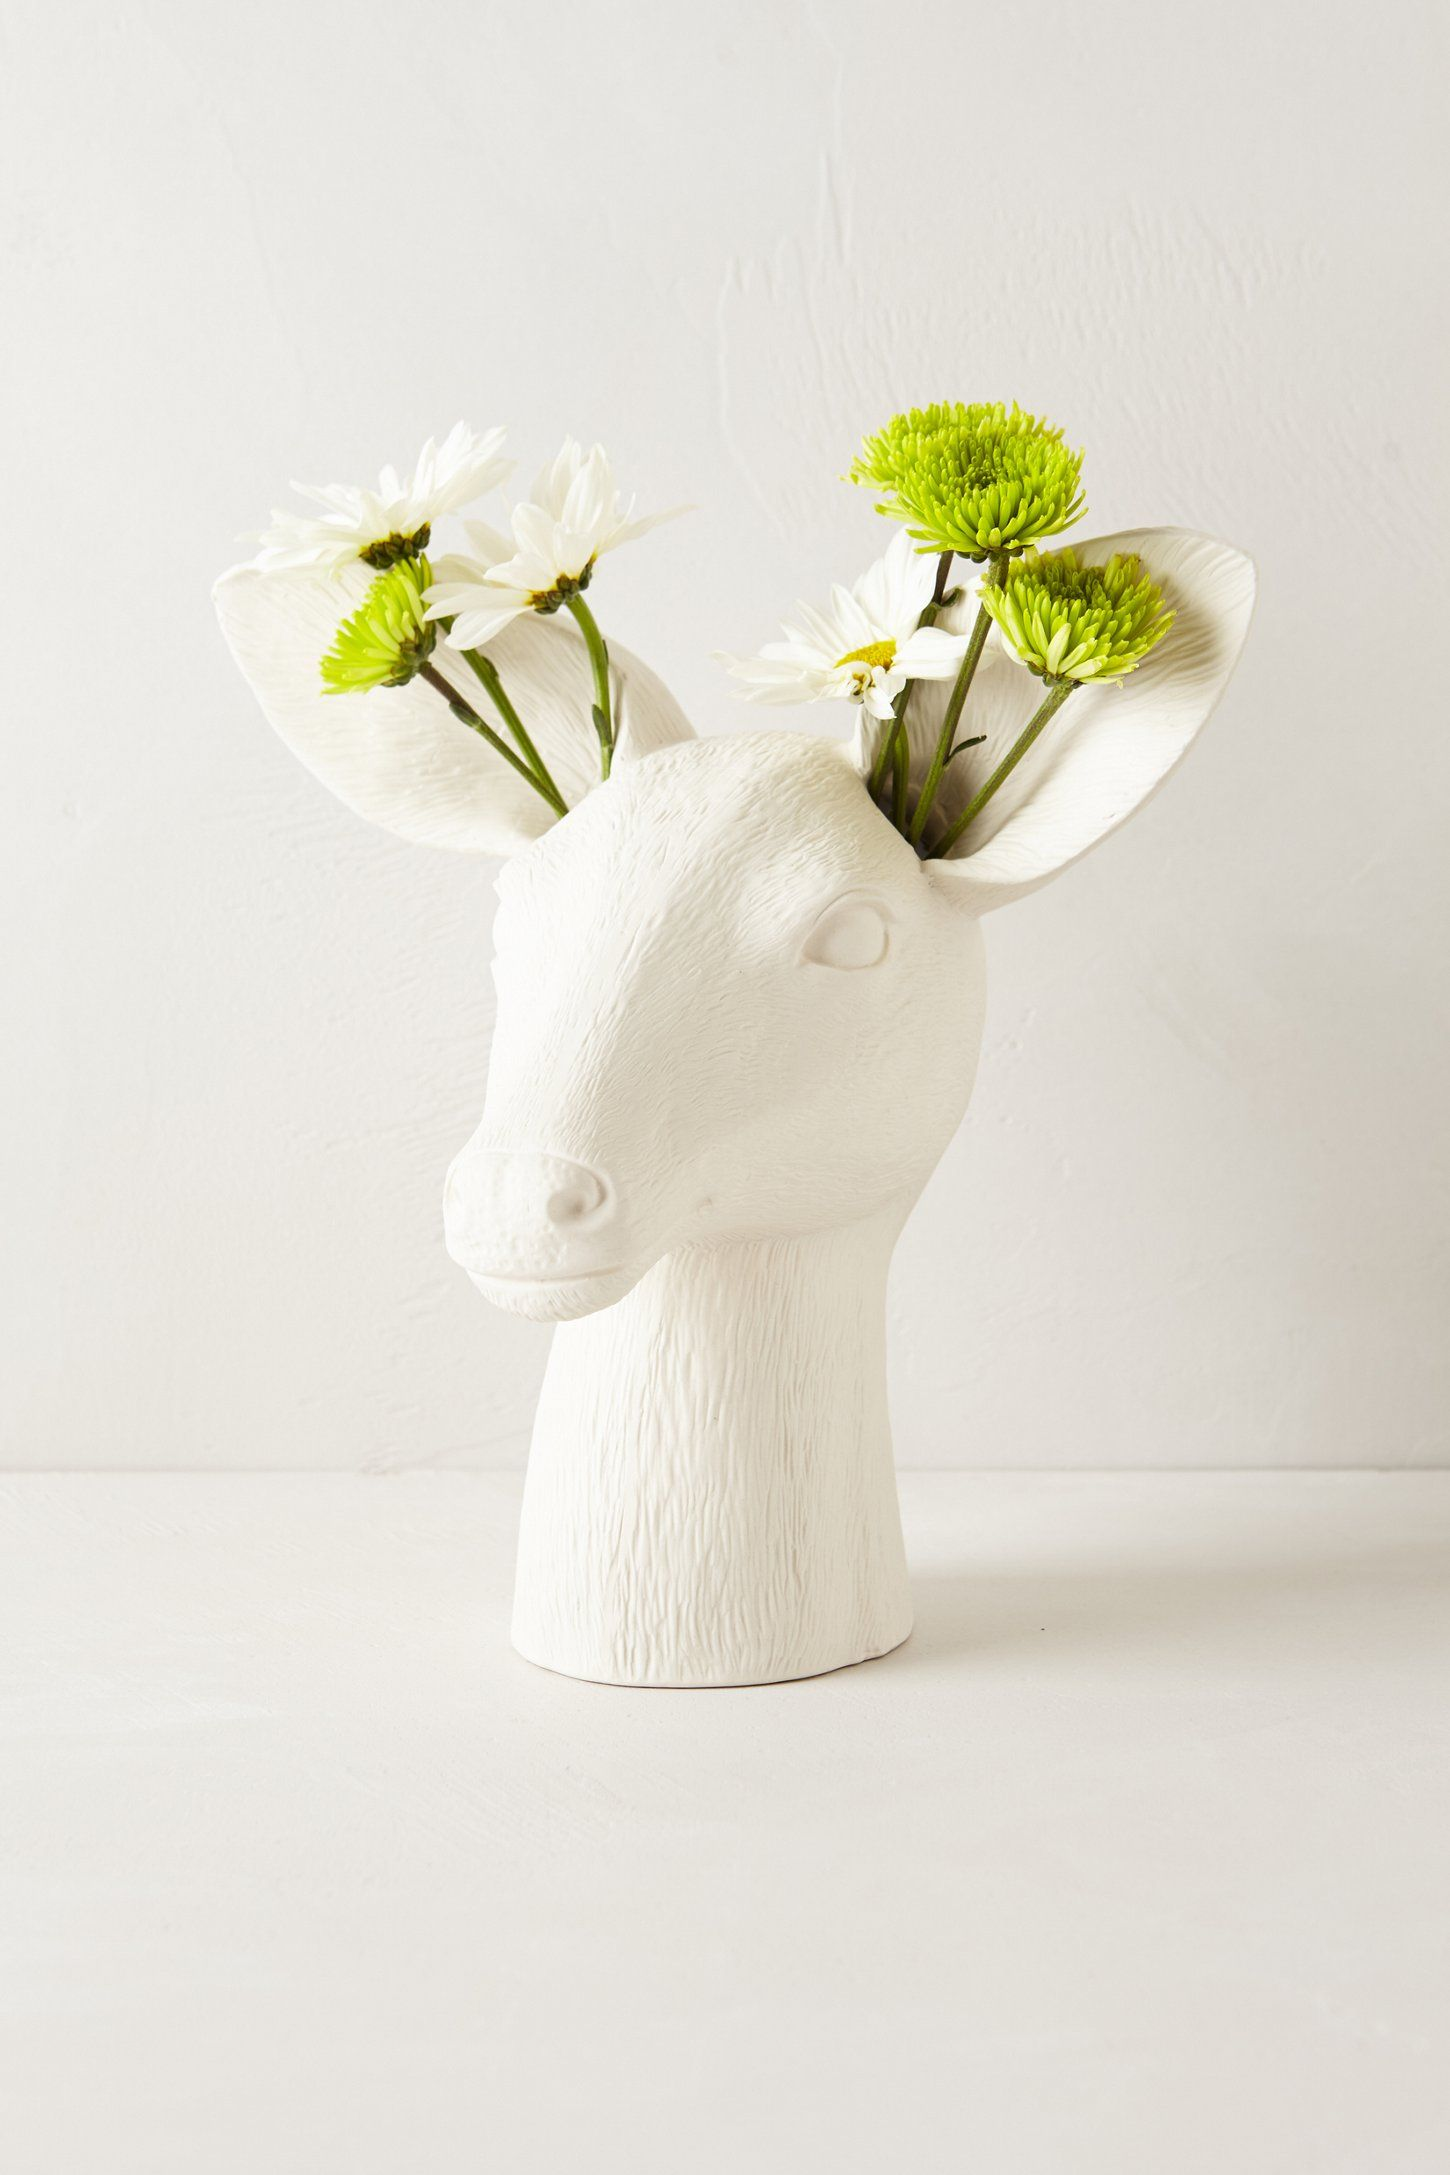 Cholet Hollow Vase - anthropologie.com | .house | Pinterest ...